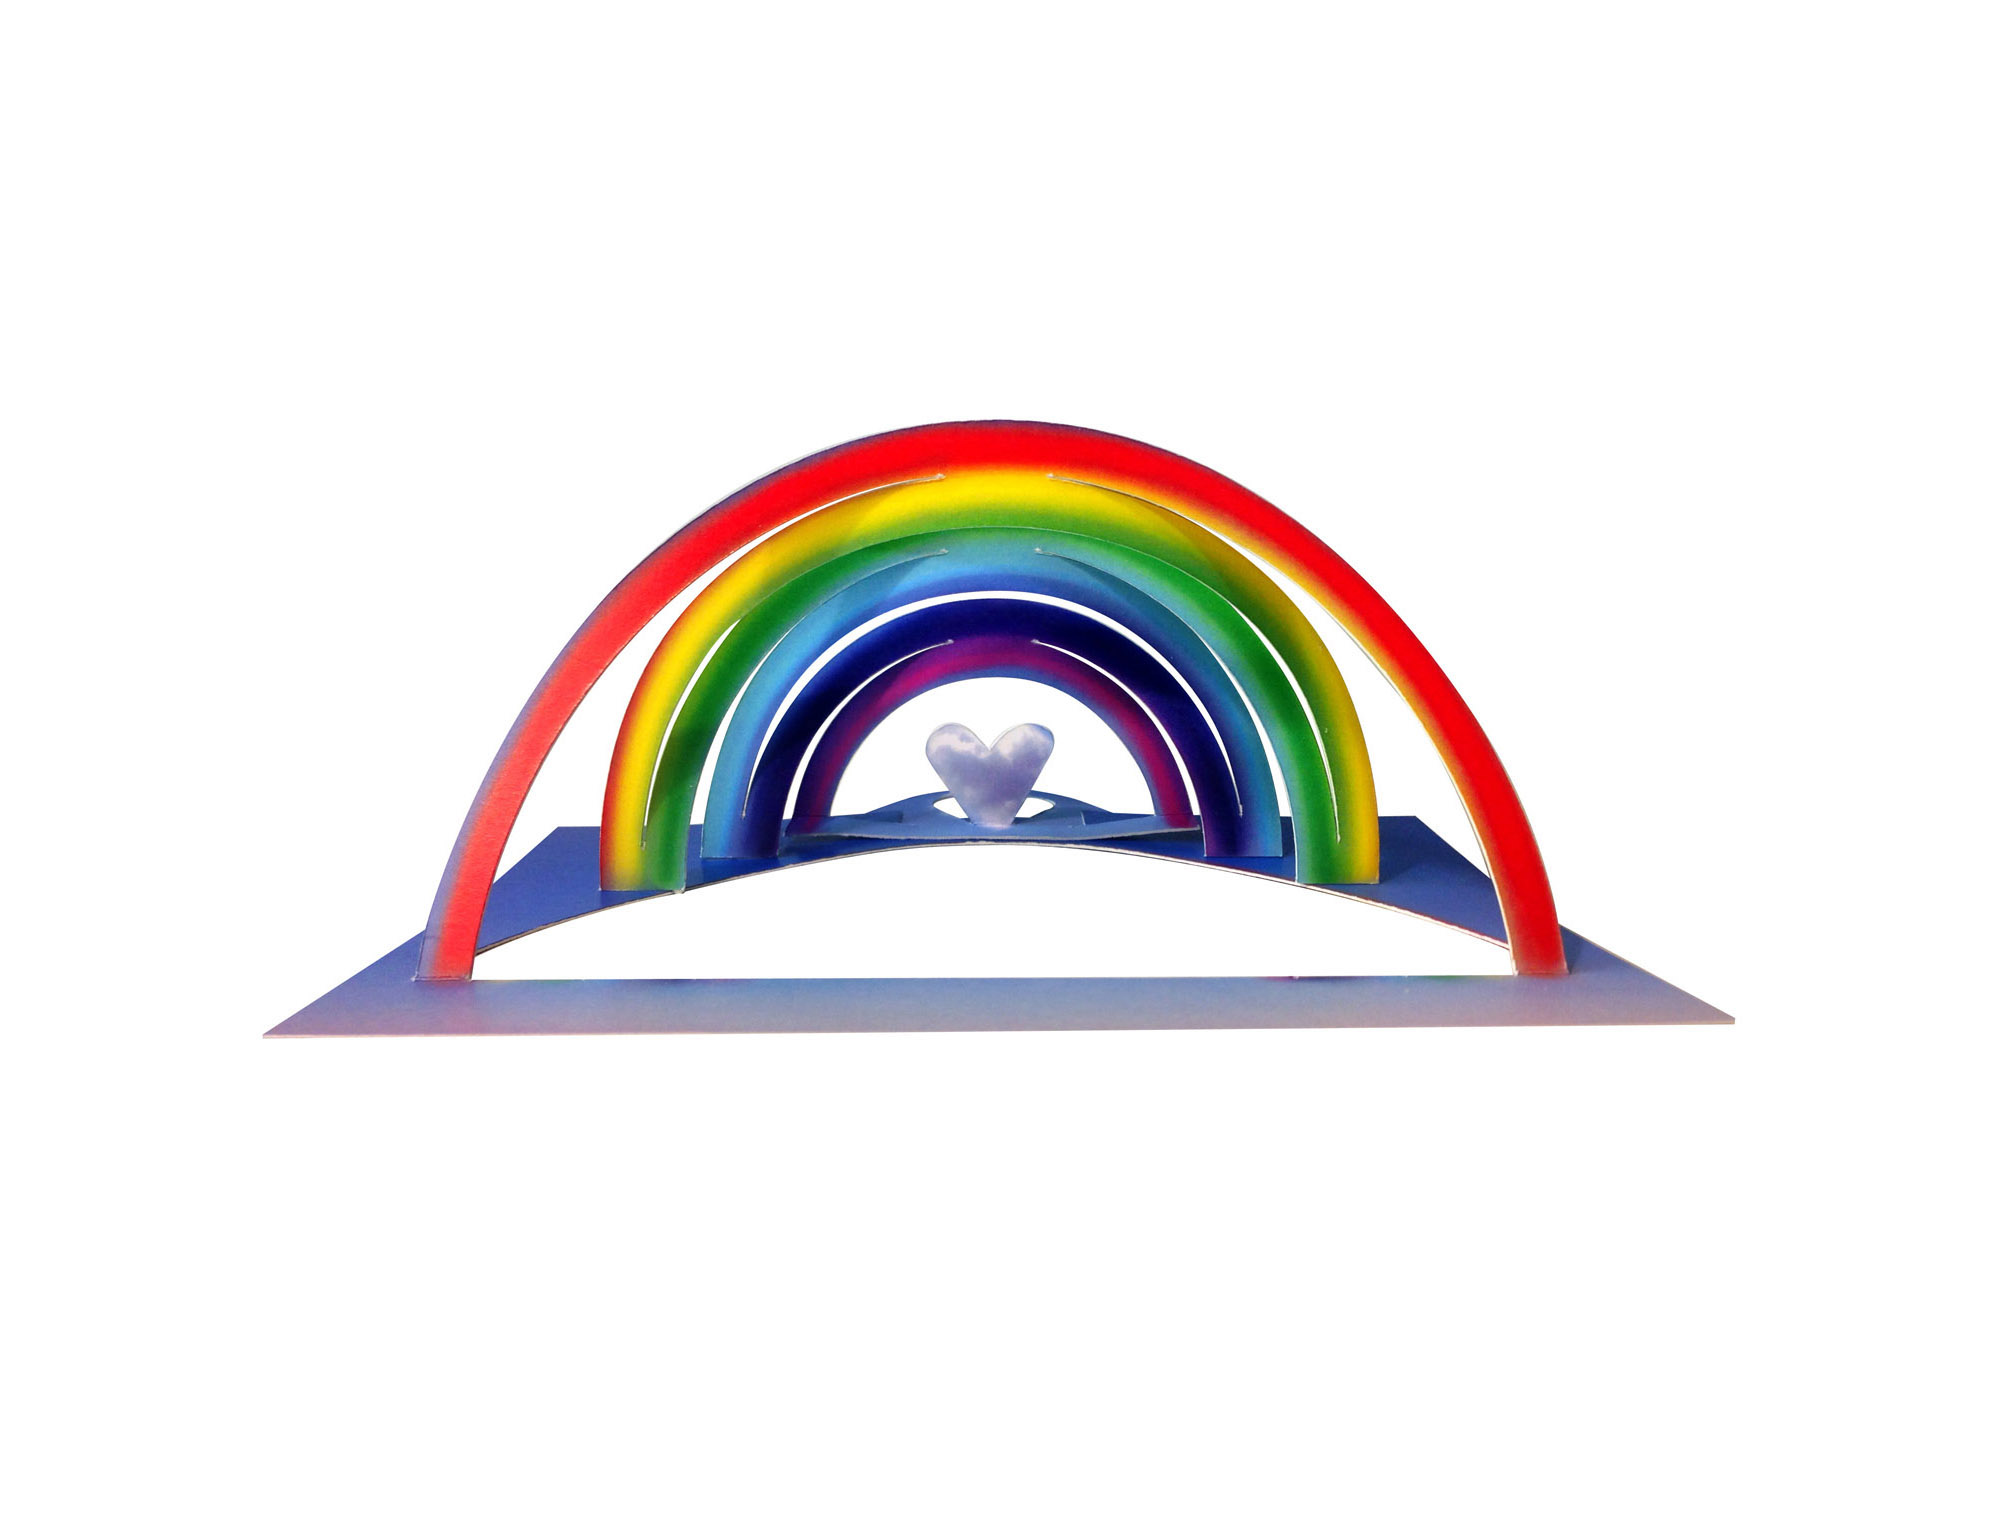 Rainbow_Folded_Single.JPG